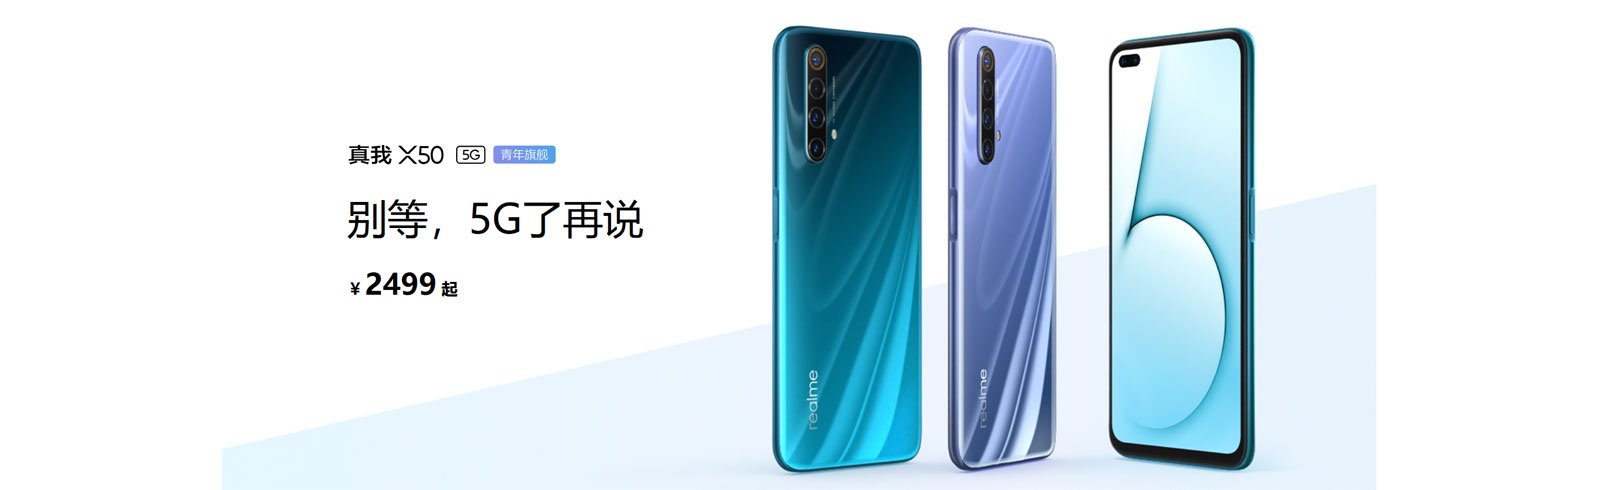 Realme X50 5G and X50 5G Master Edition are official, prices start at CNY 2499 (USD 360)